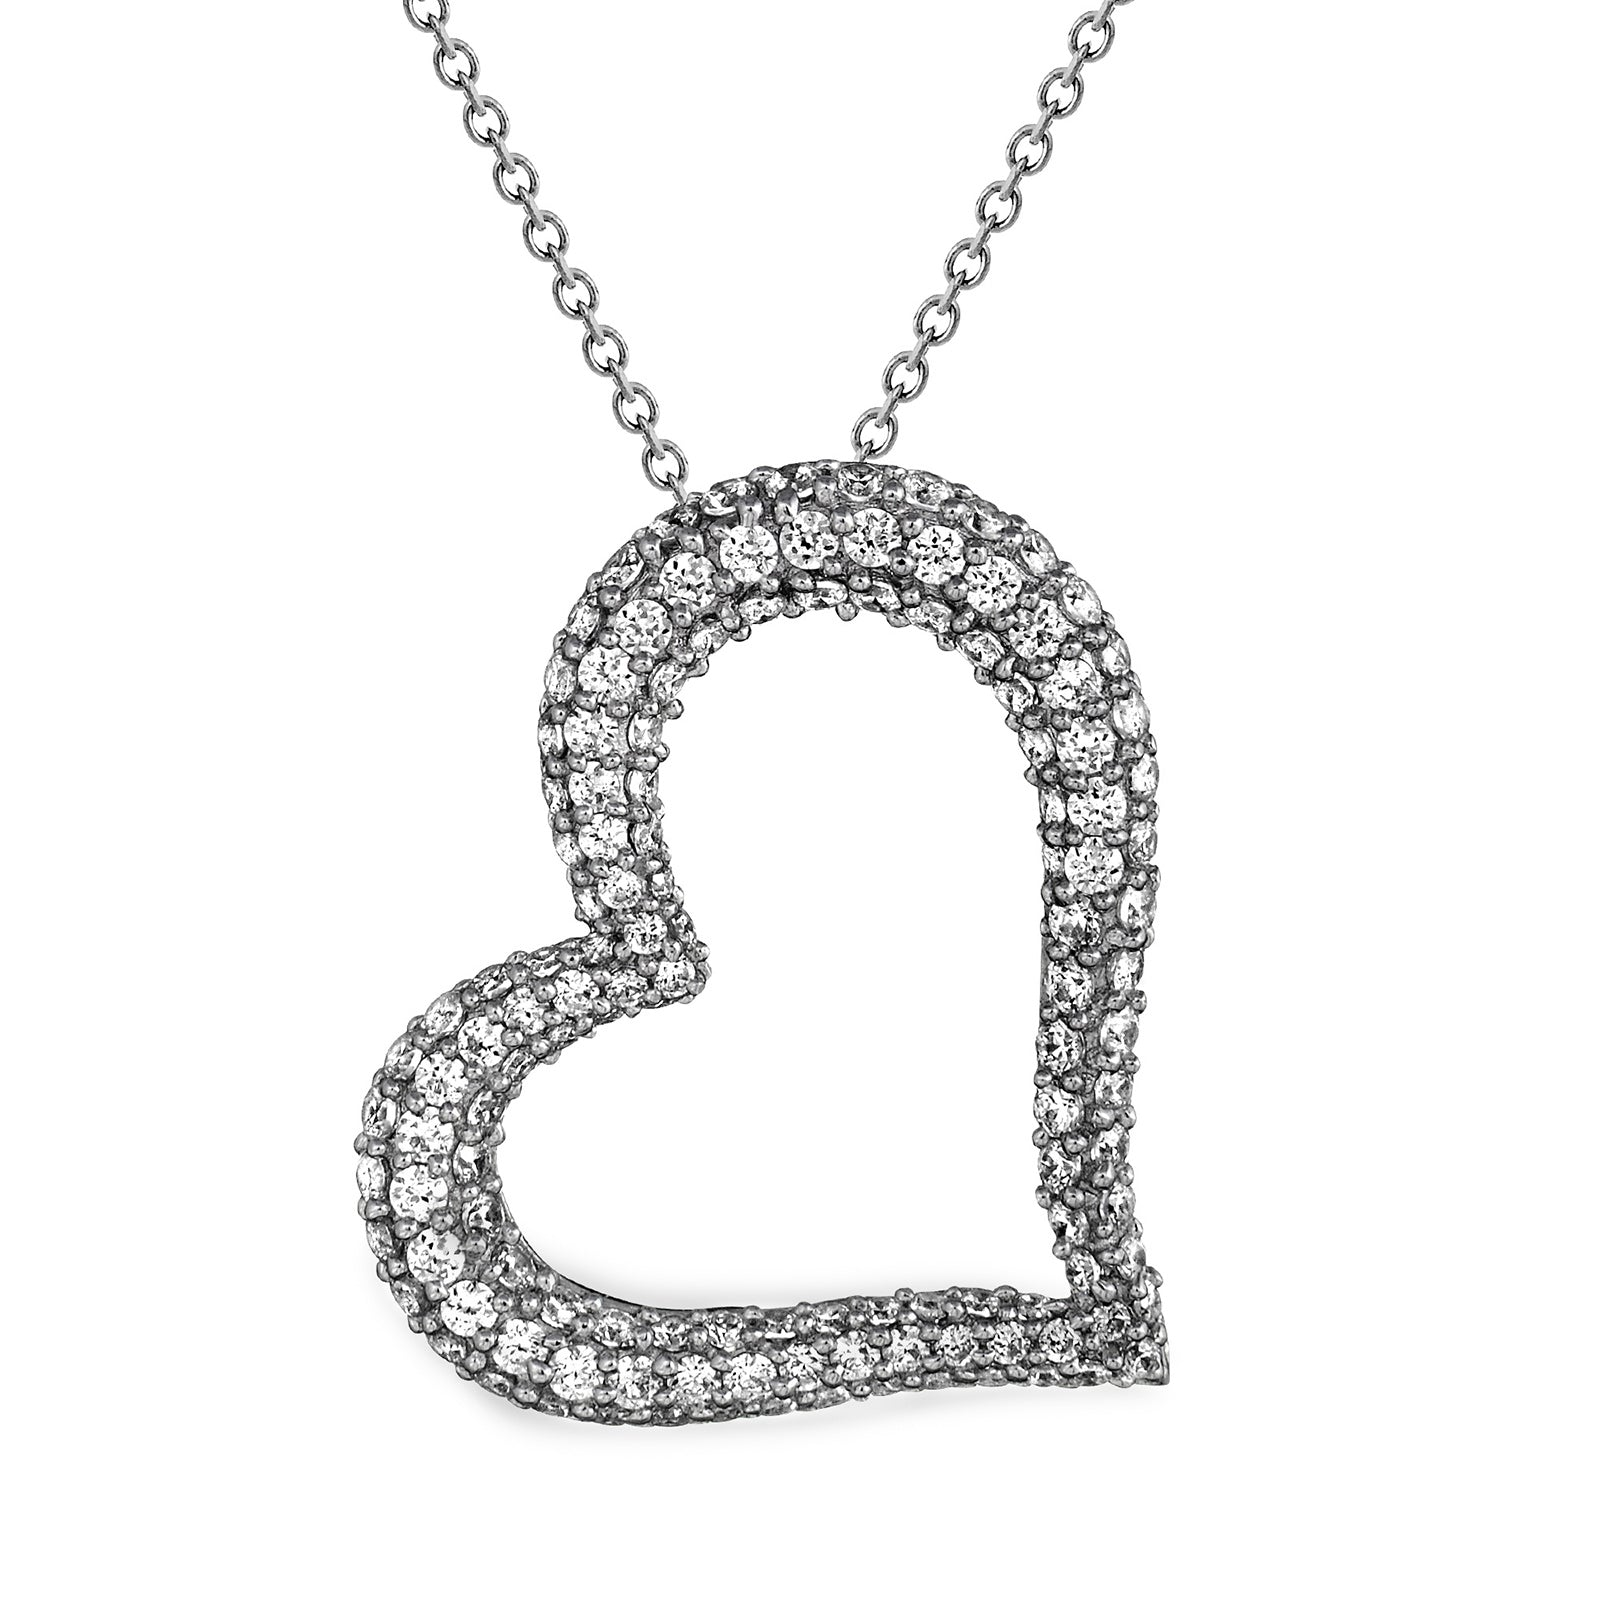 EWP120161 Sterling Silver Heart Pendant Necklace